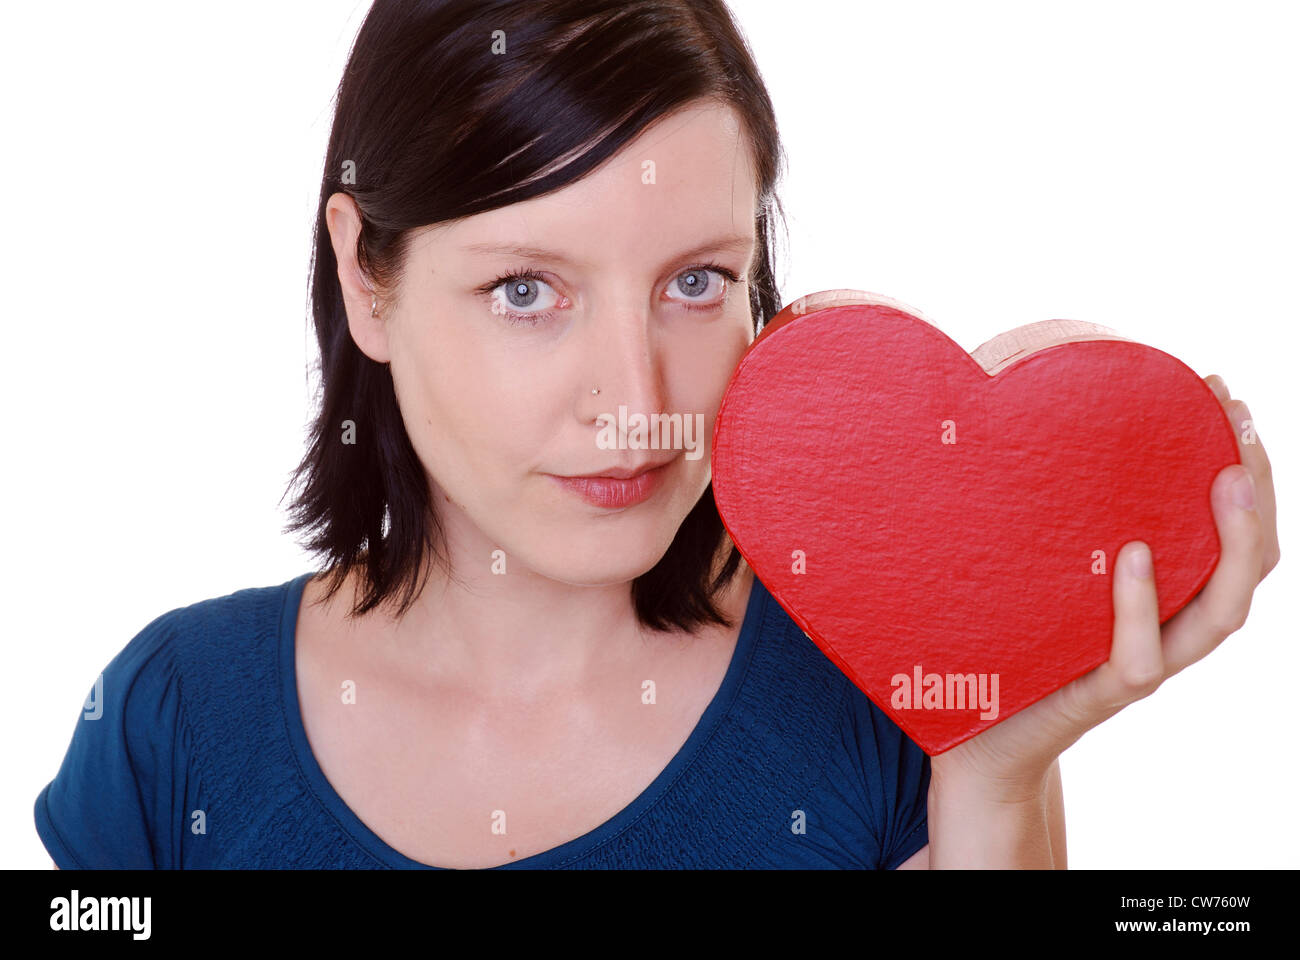 Woman looks thoughtfull and holds a heartgiftbox in her hand - Stock Image